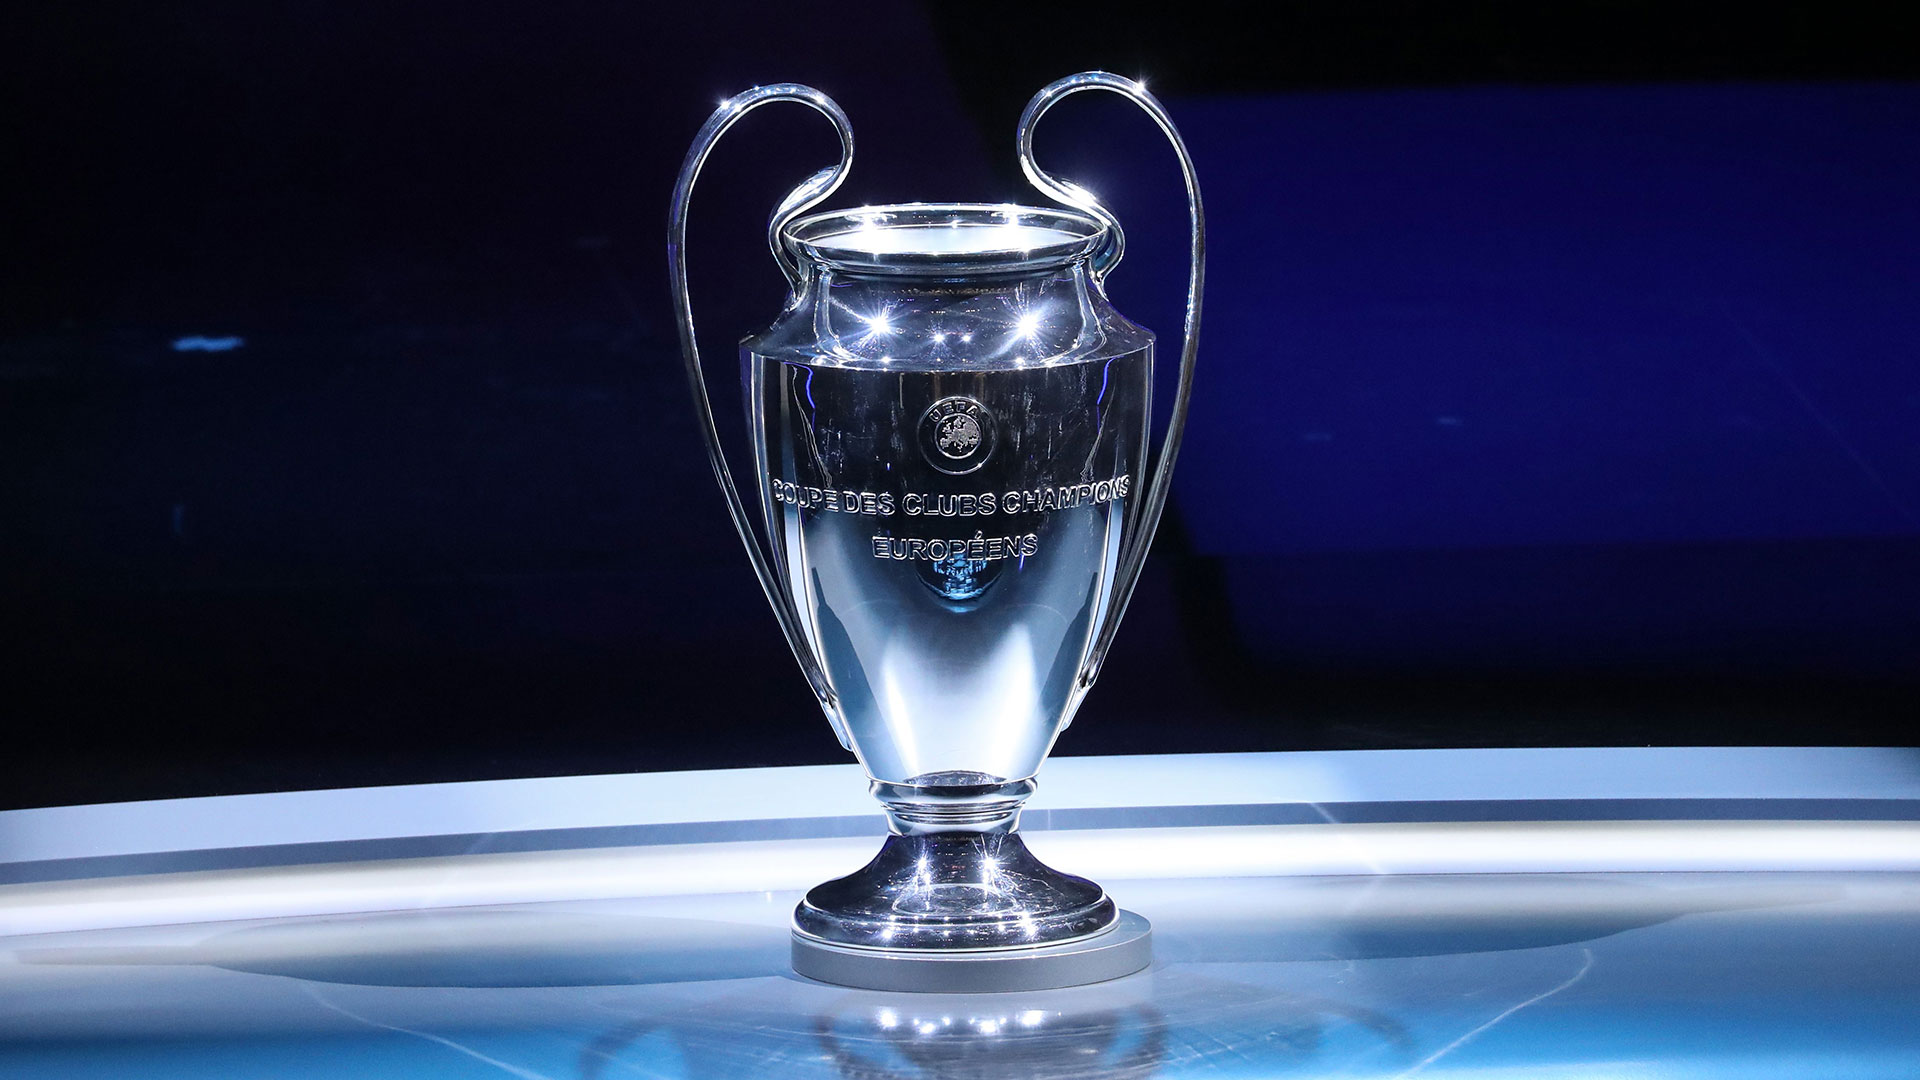 Florentino Perez: No Club Will Be Thrown Out of Champions League